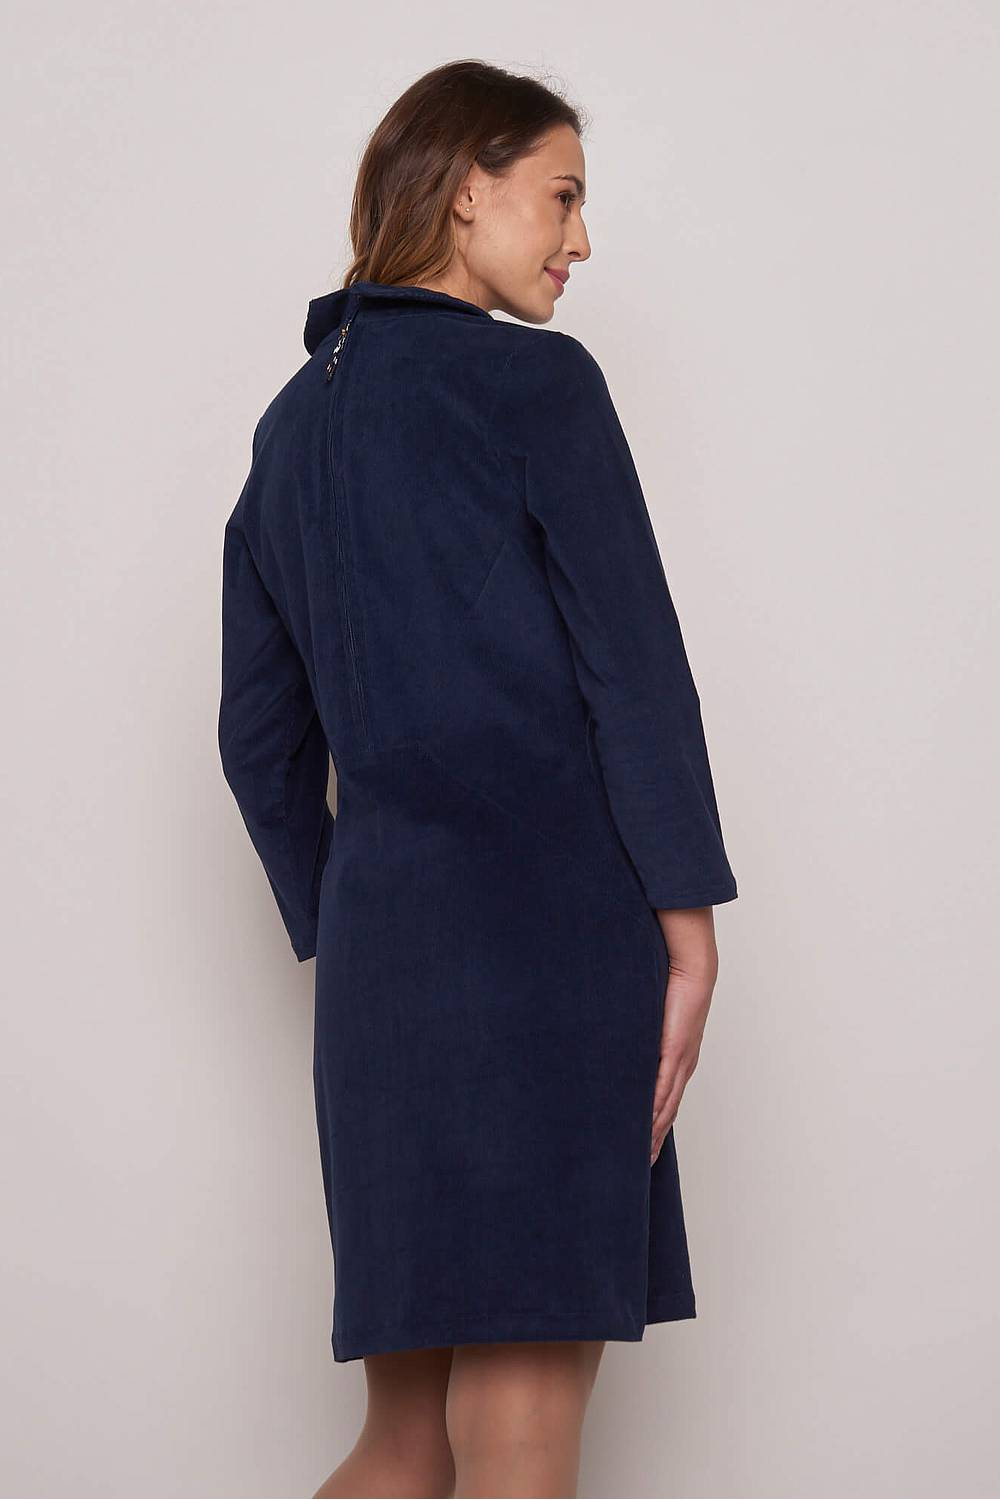 Cordkleid     navy